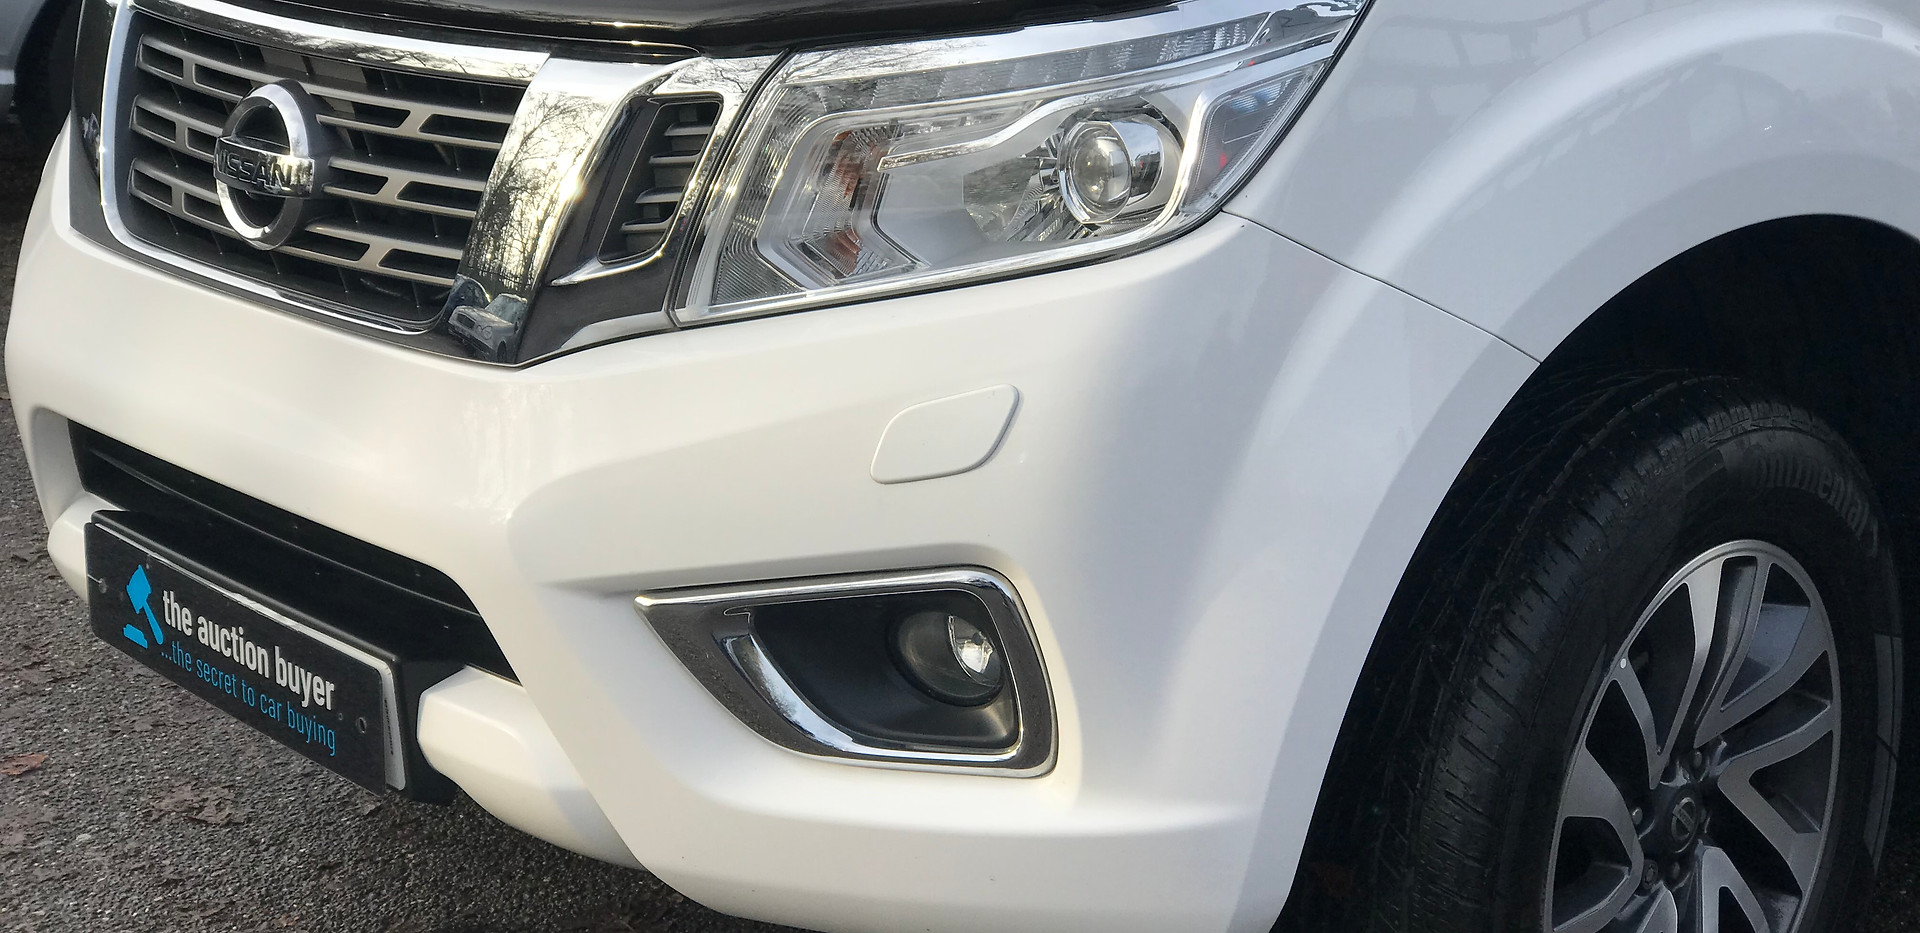 Nissan Navara | Sourced by Theauctionbuyer.com